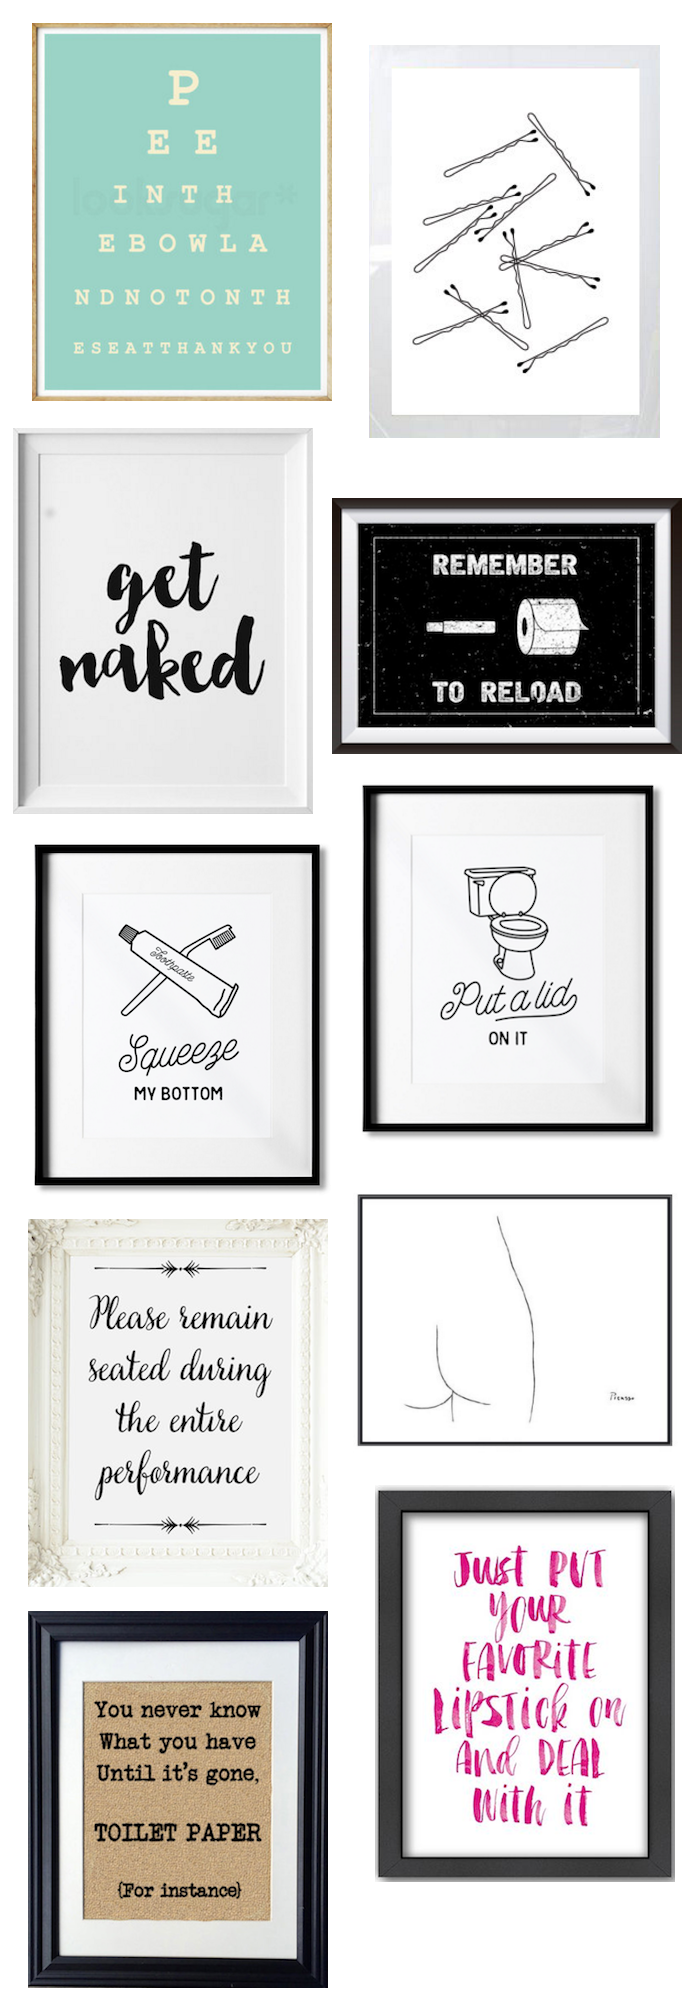 10 funny yet classy prints for your bathroom for Funny bathroom photos